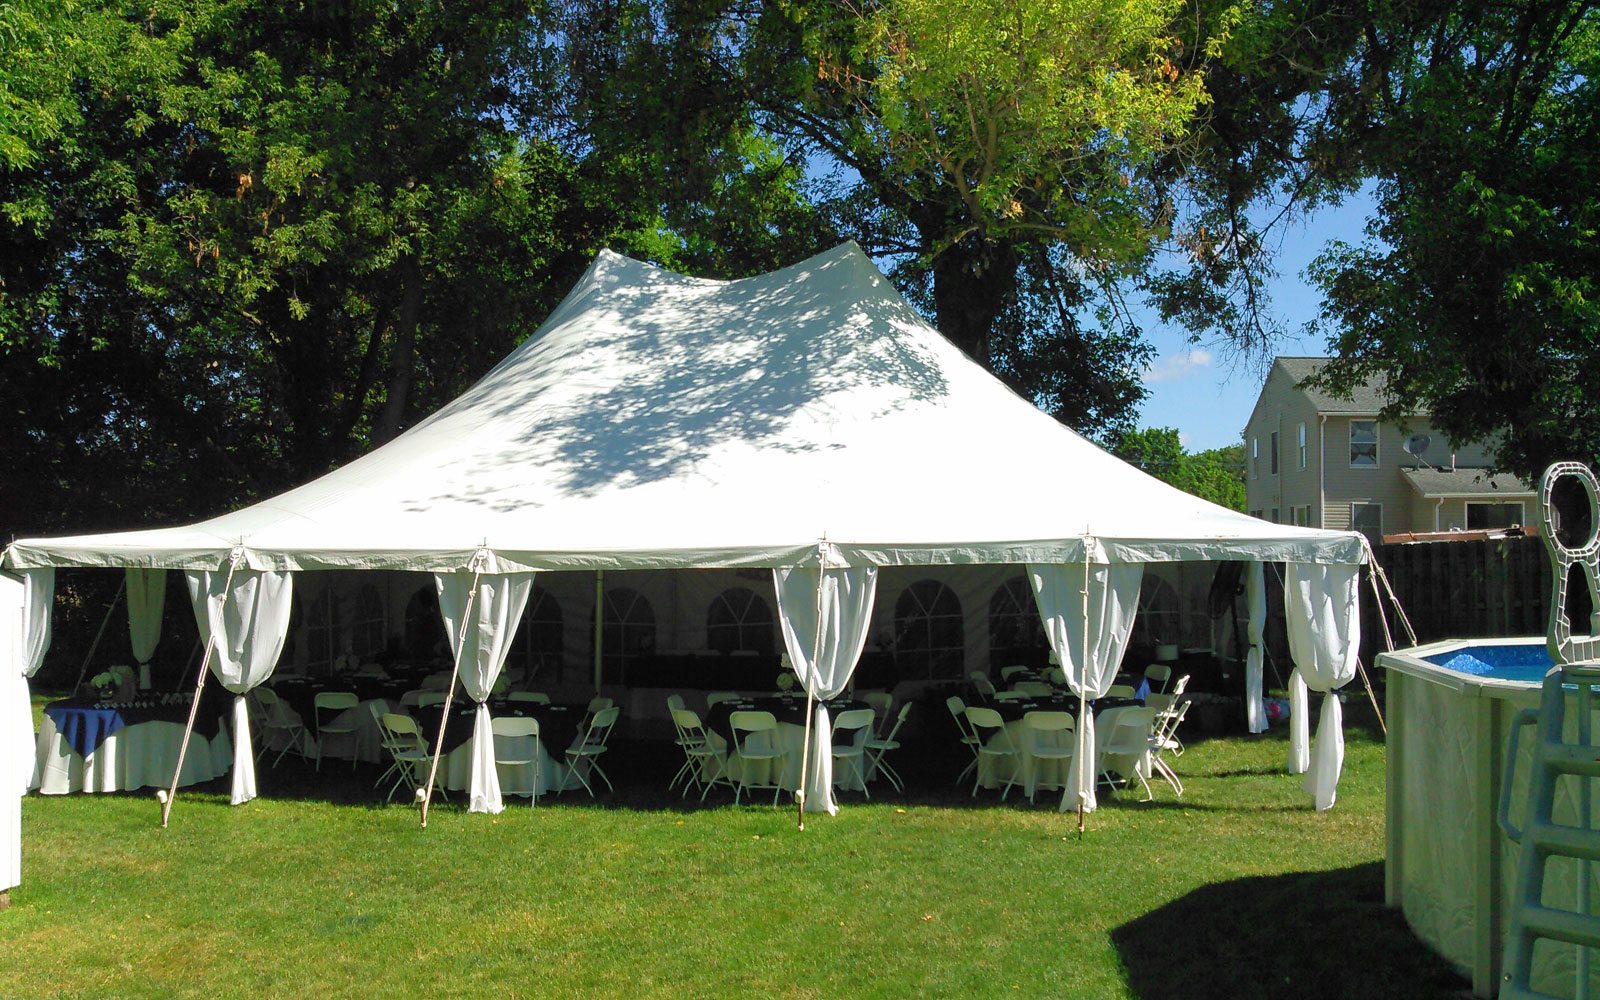 Receptions & Clineu0027s Tent Rental Inc u2013 Clineu0027s Tent Rental Inc